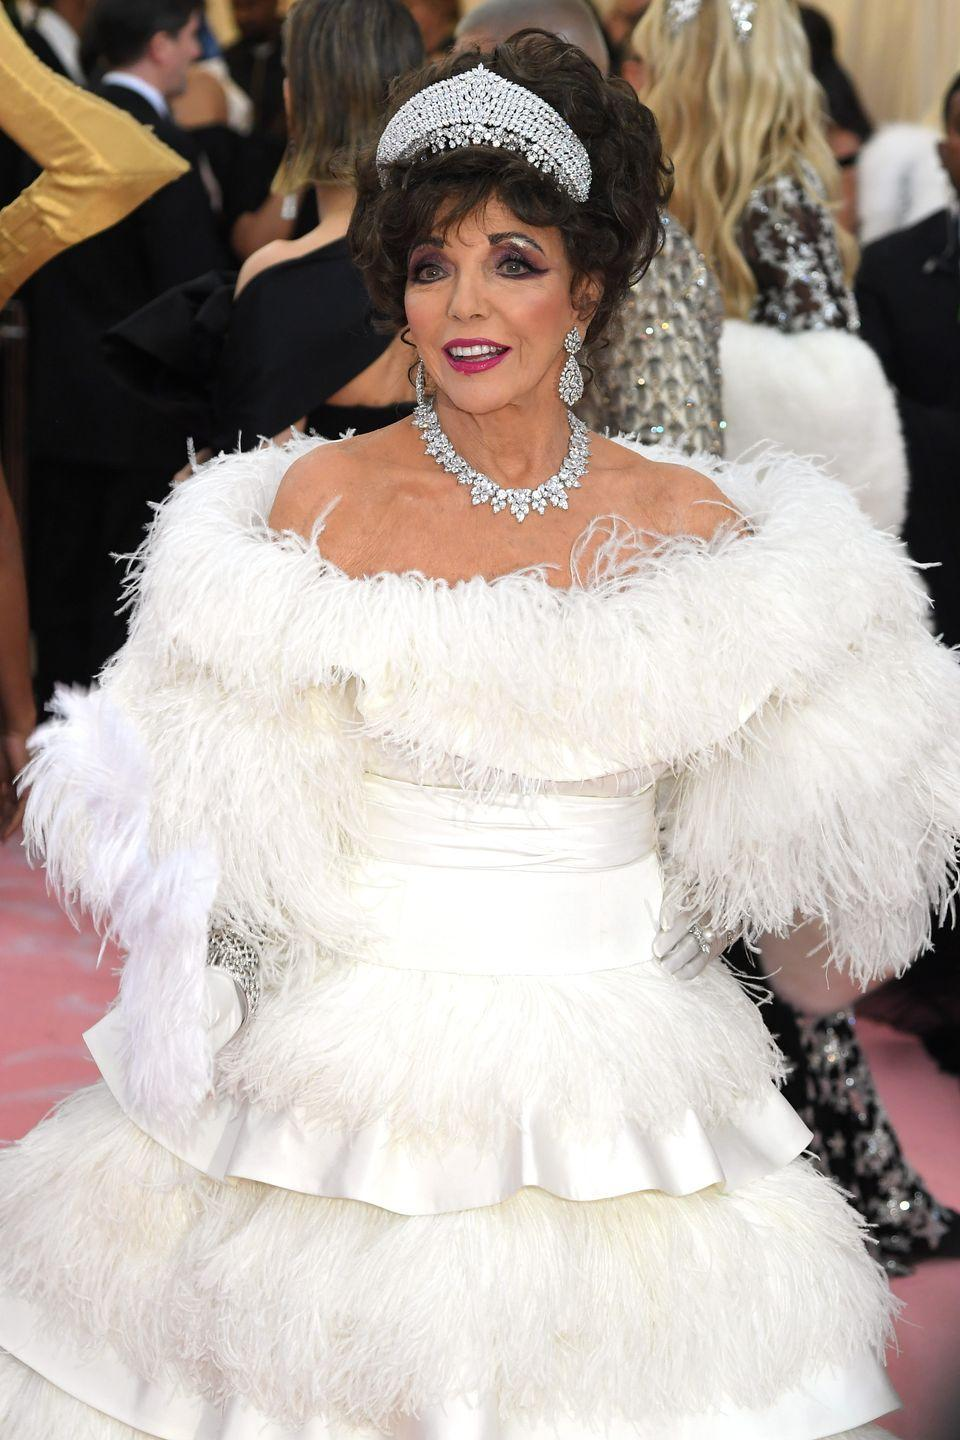 <p>Taking the theme of 'Camp' in her immaculately shod stride, Collins went to the 2019 Met Gala dressed as her own Dynasty character, Alexis Carrington. She paired her feathered Valentino couture gown with a sparkling suite of diamond jewellery, including an impressive kokoshnik tiara.</p>